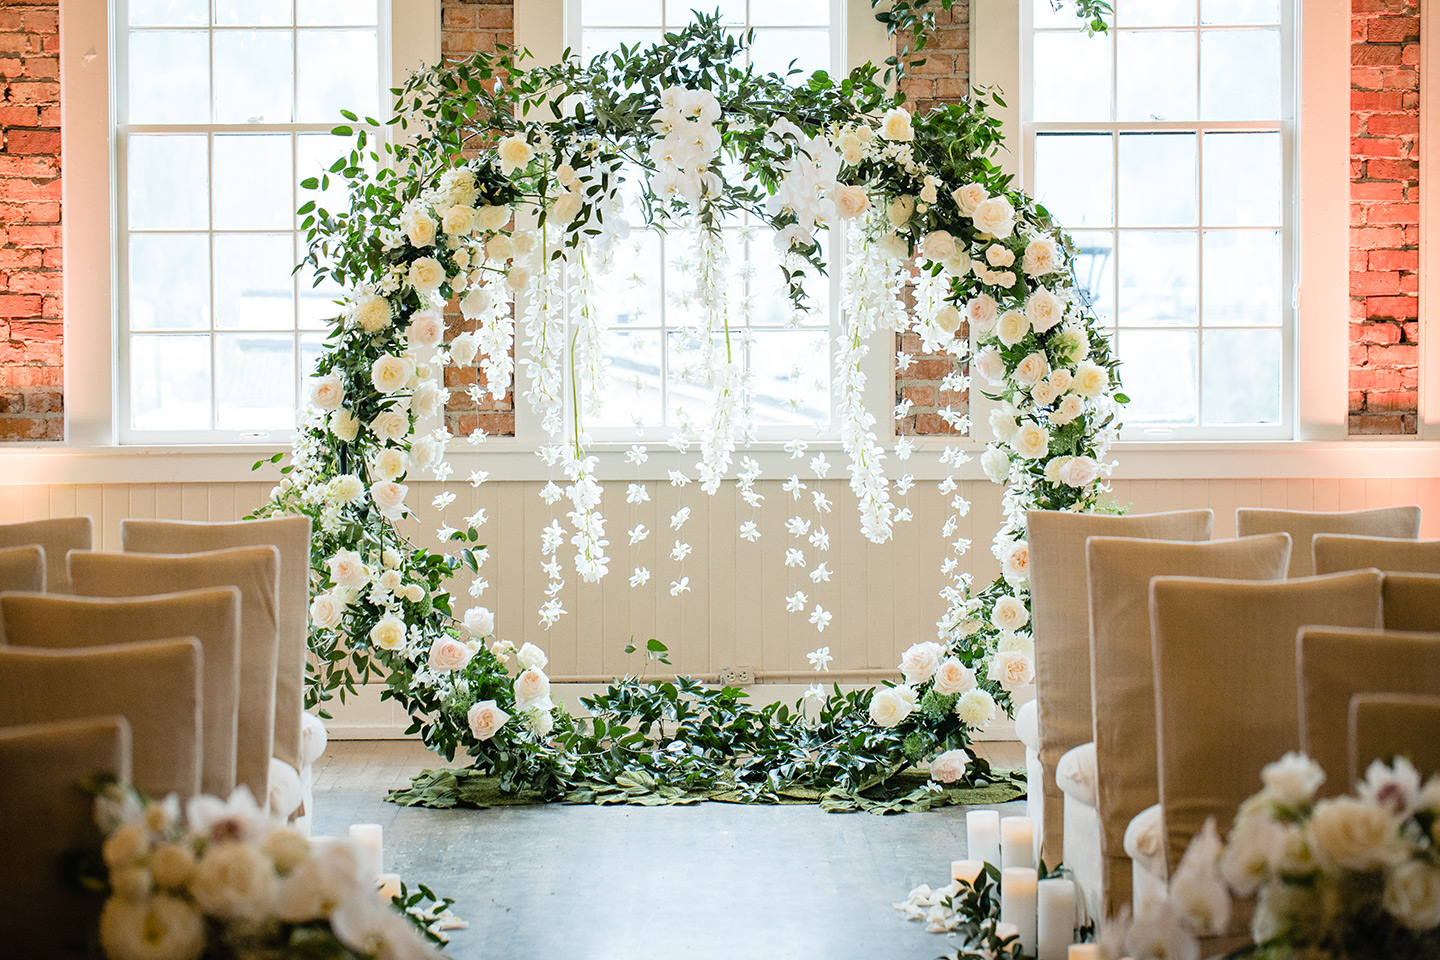 seattle-floral-design-seattle-weddings-ceremony-circle-arch